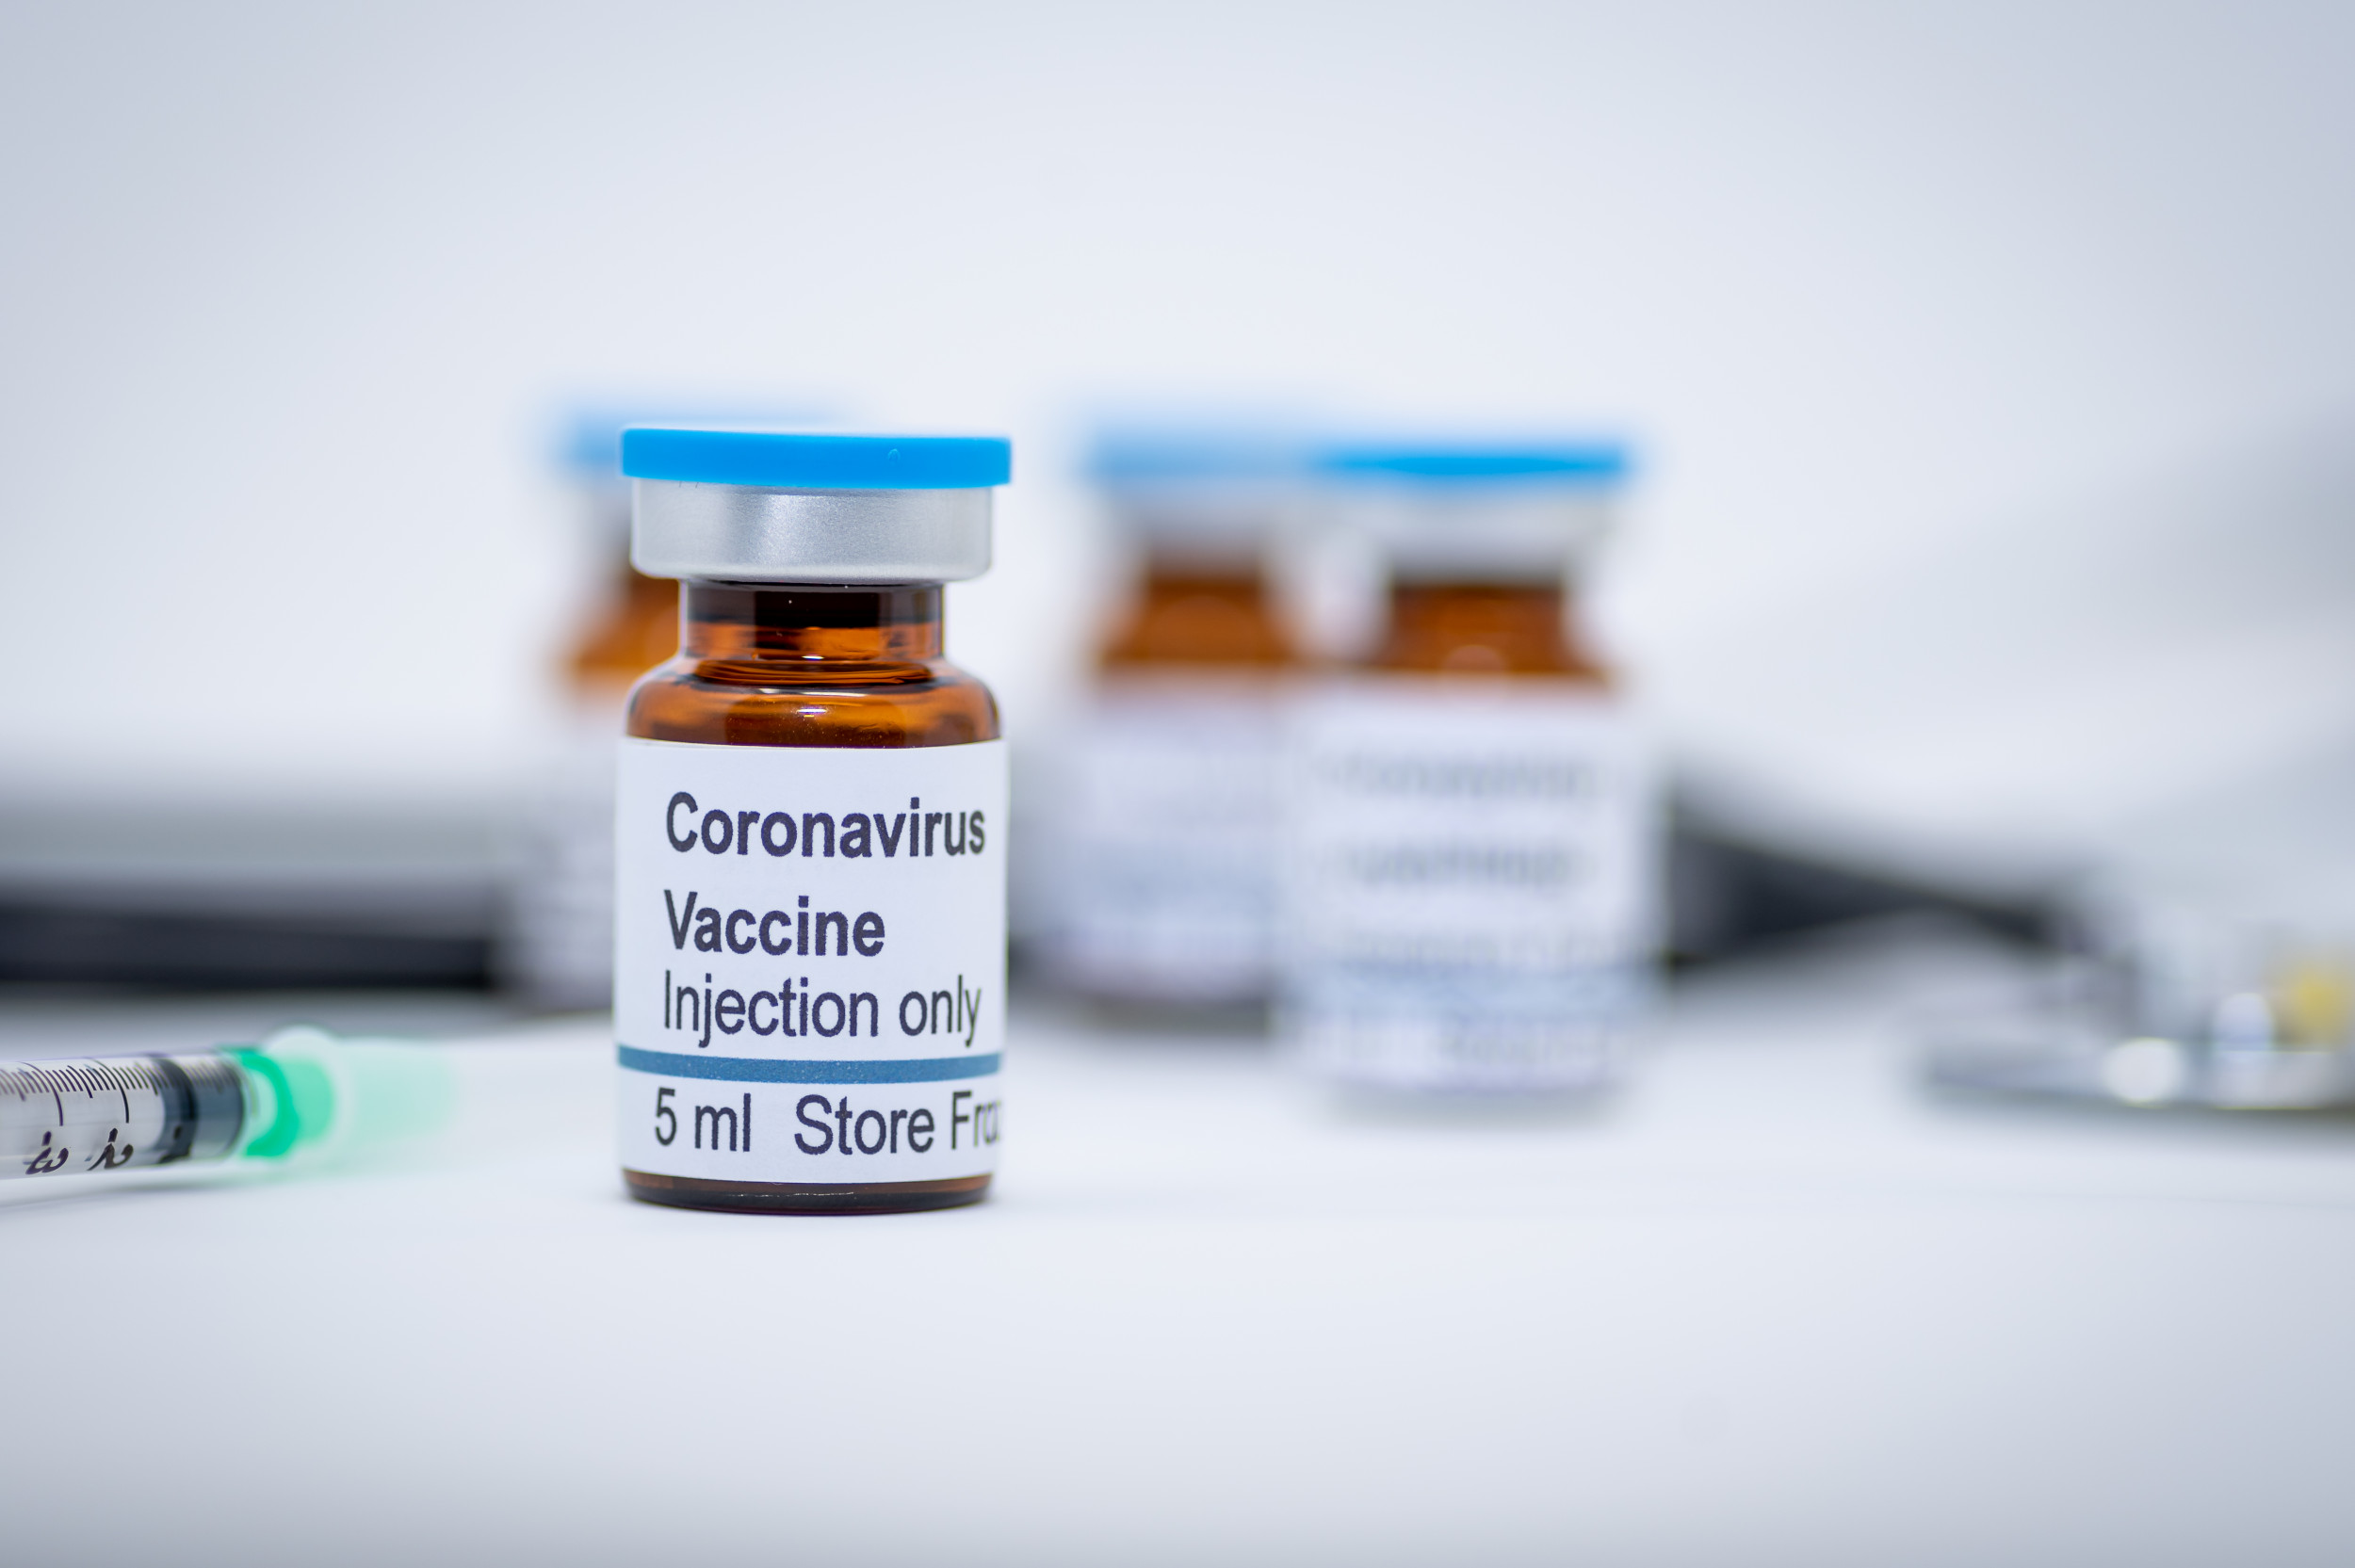 New COVID vaccine produces antibodies in all patients during first trials